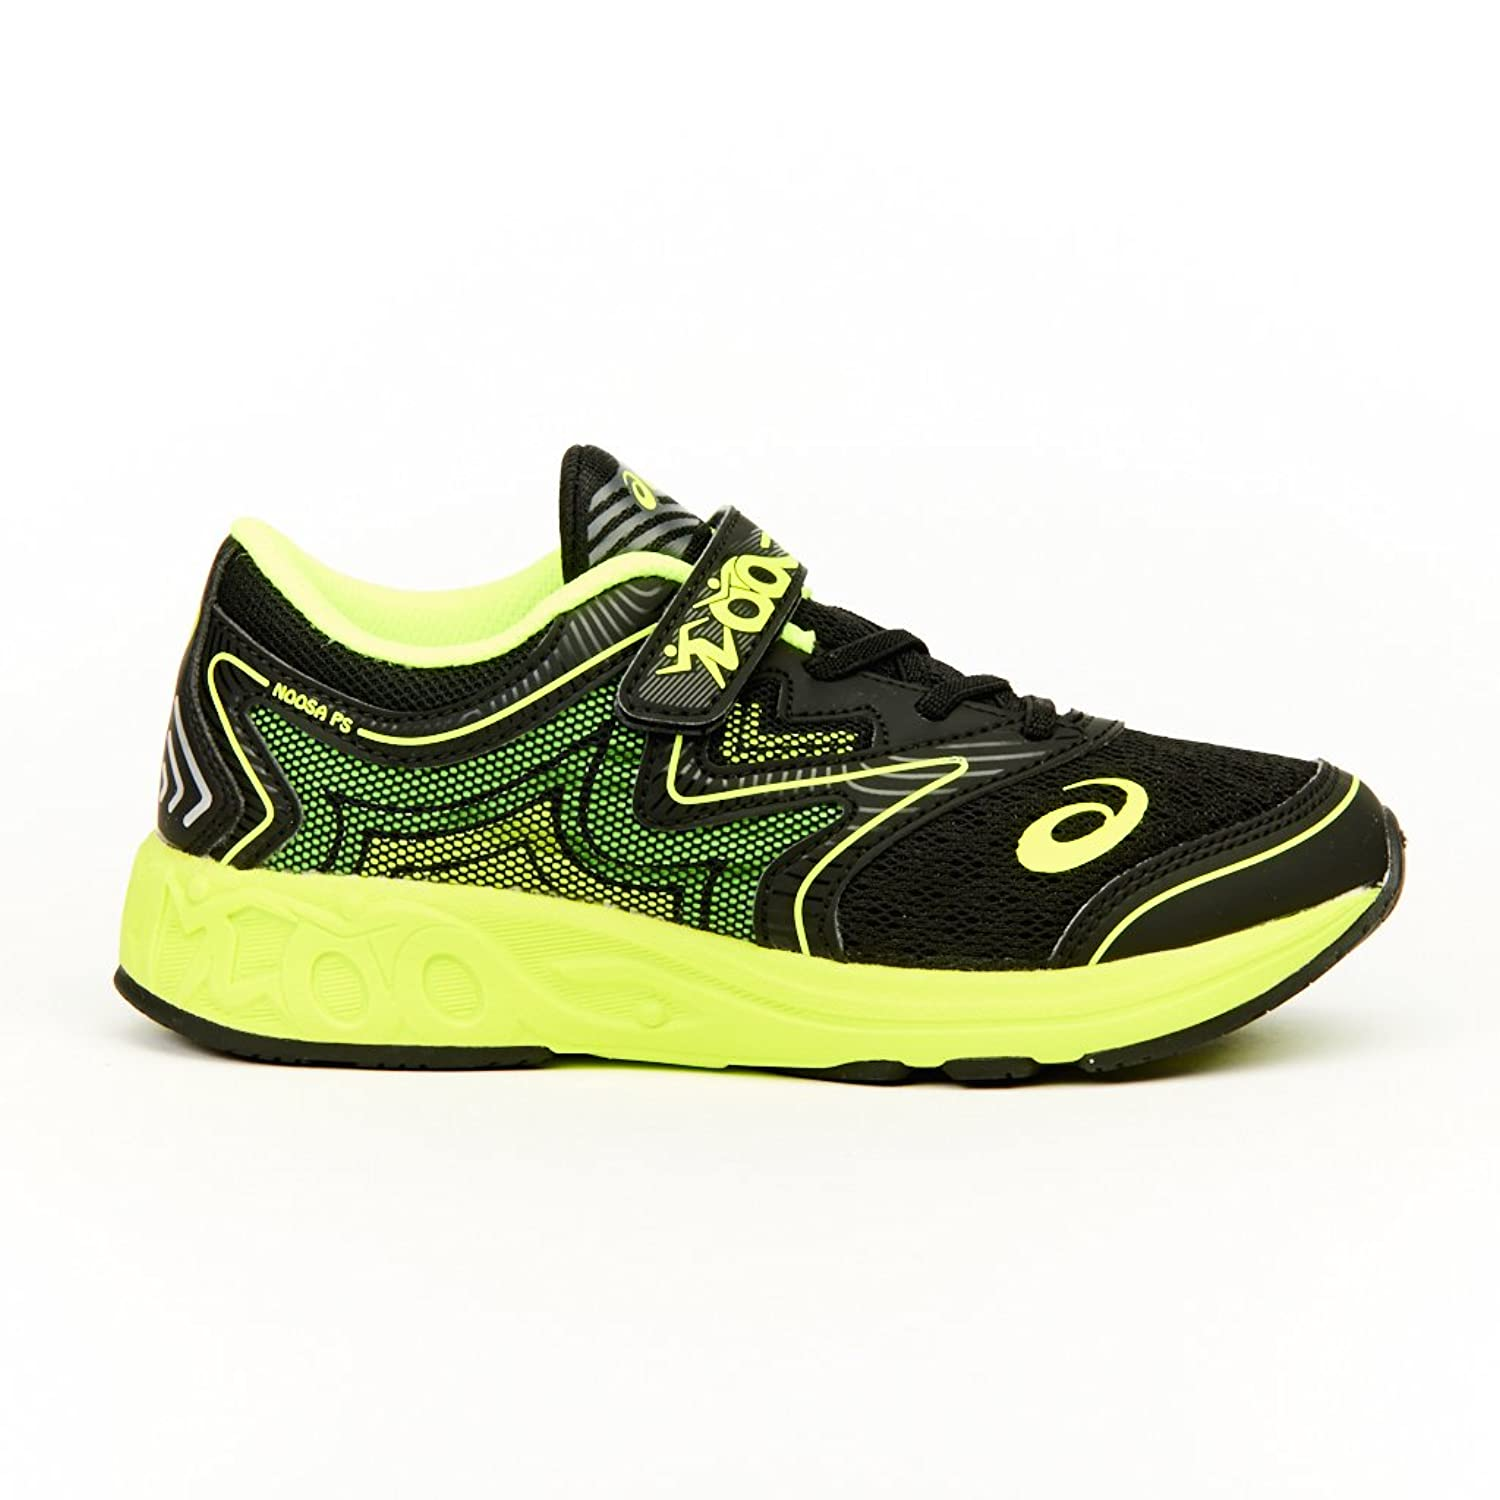 SNEAKERS ASICS GEL noosa PS gel NYLON NERO VERDE FLUO